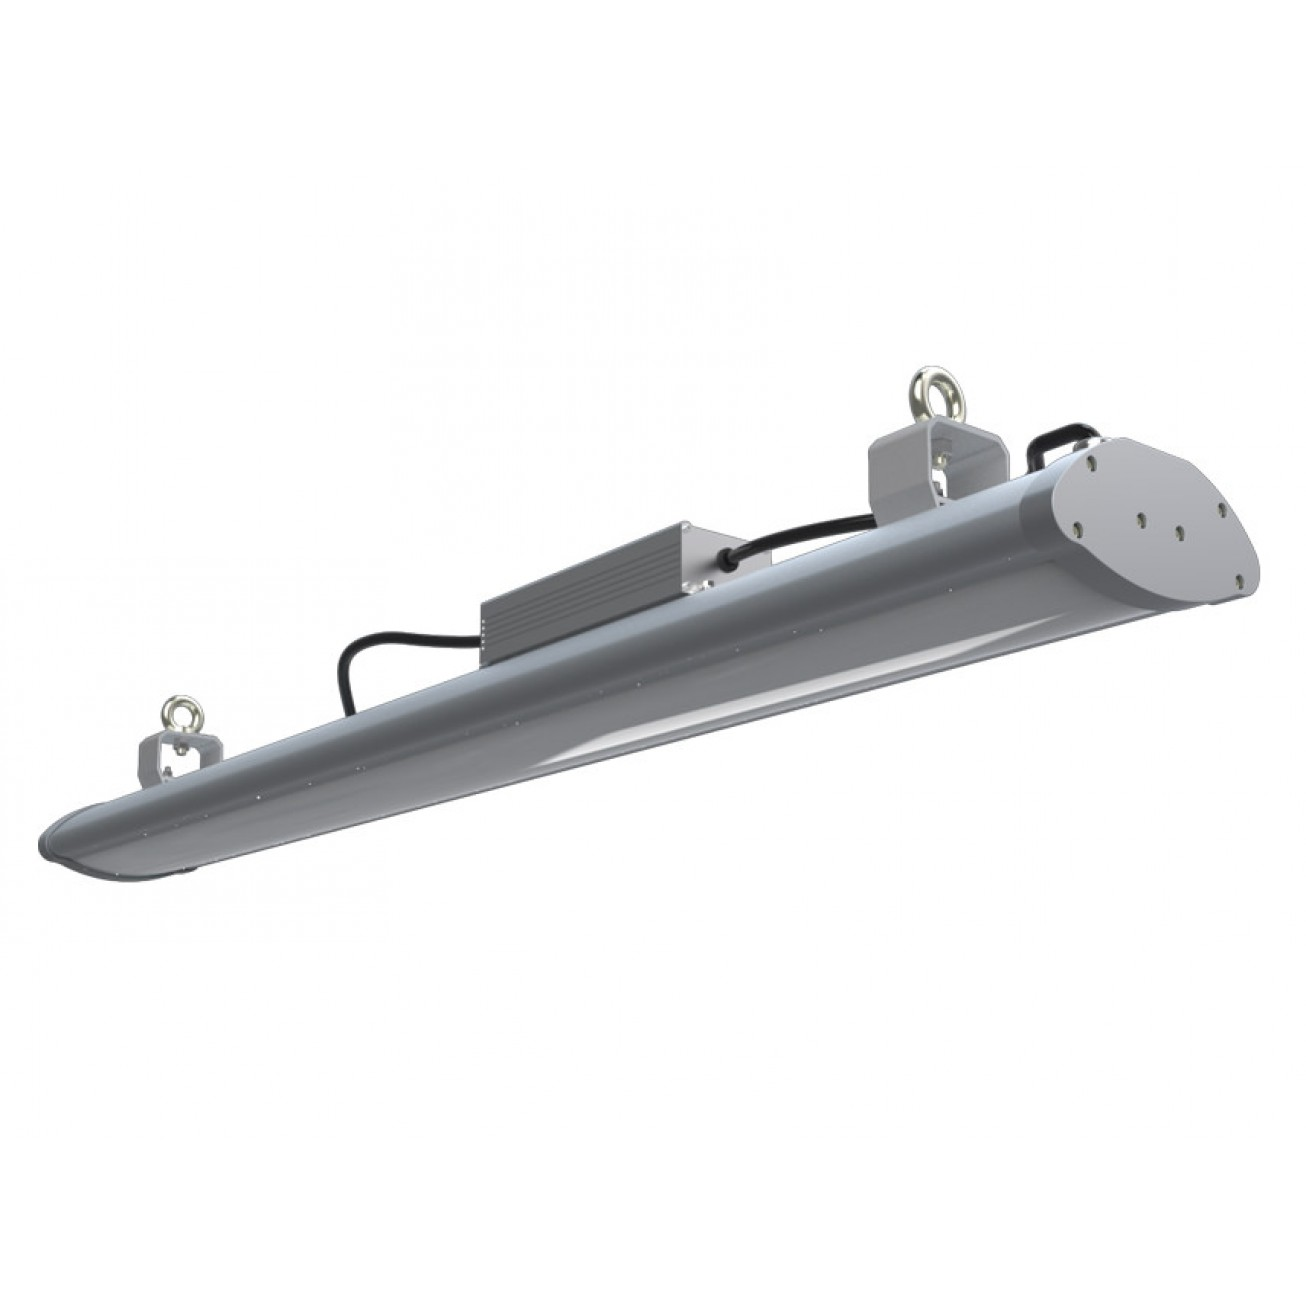 Cleanline Industrial LED Linear High Bay Light Fixture